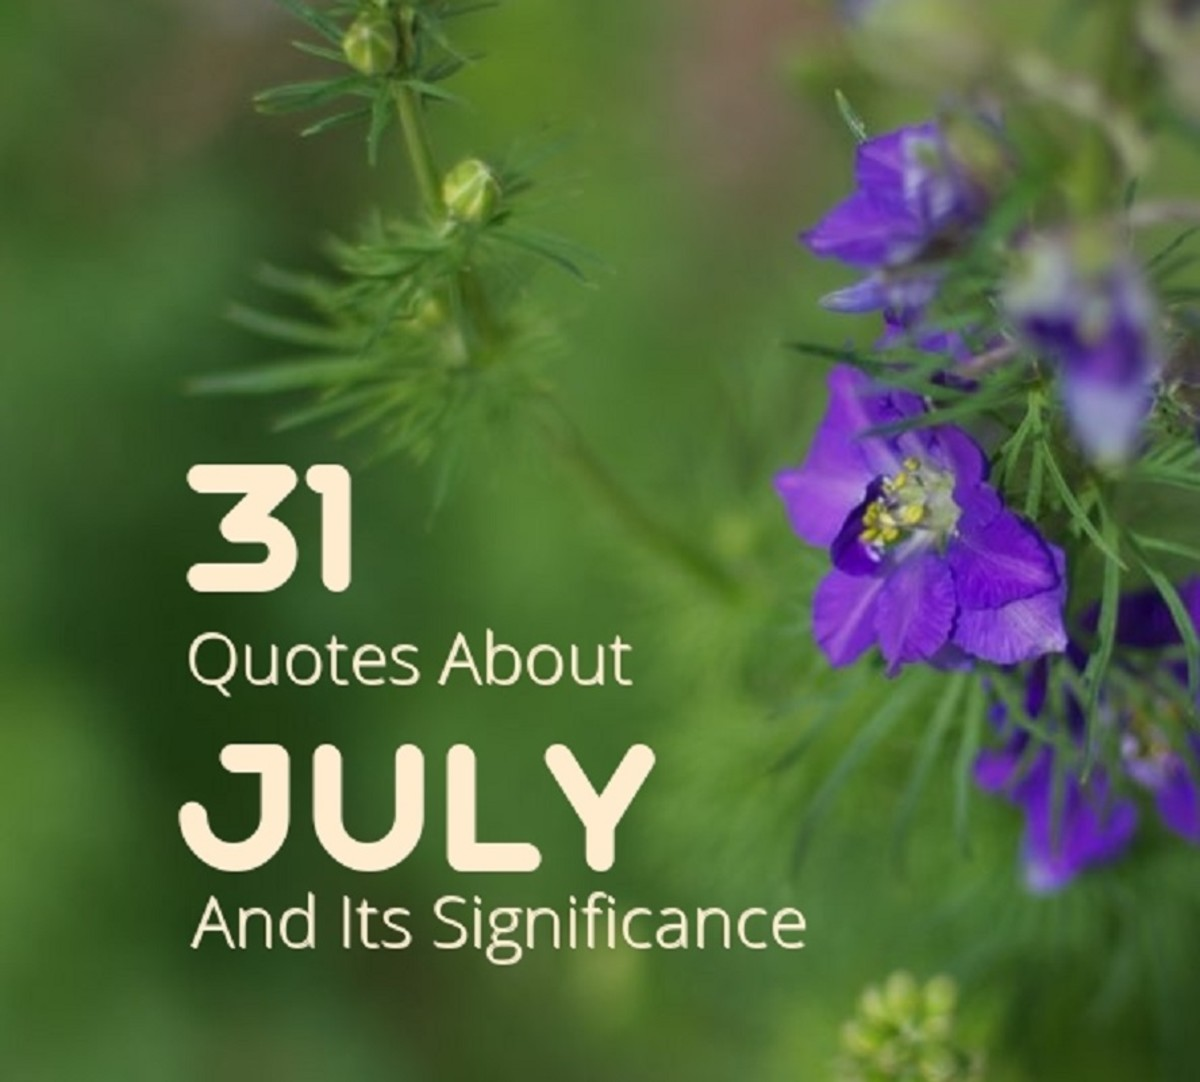 31 Quotes About July and Its Significance